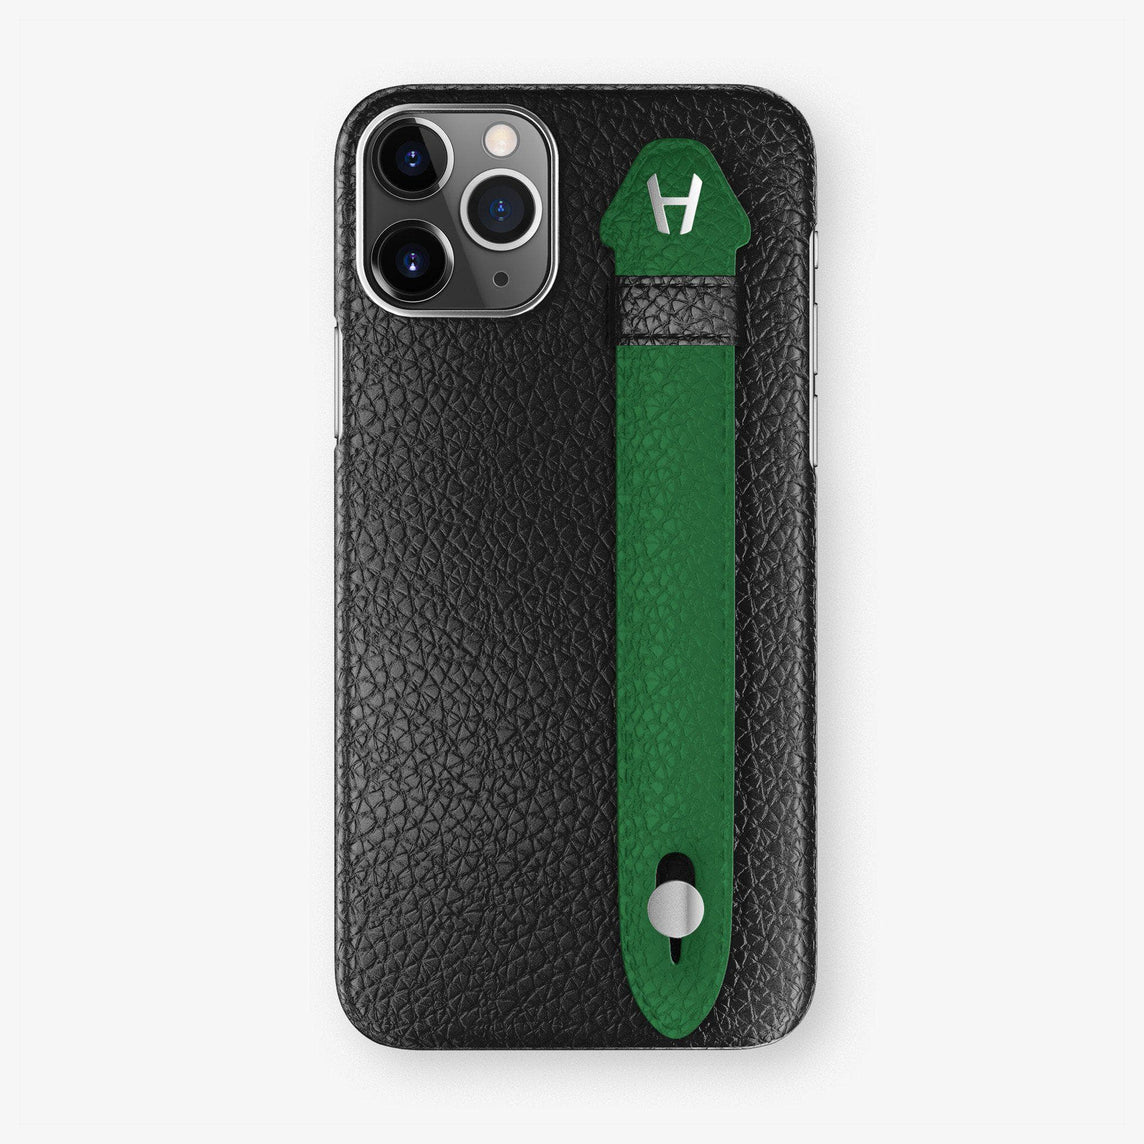 Calfskin Finger Case iPhone 11 Pro Max | Black/Green - Stainless Steel